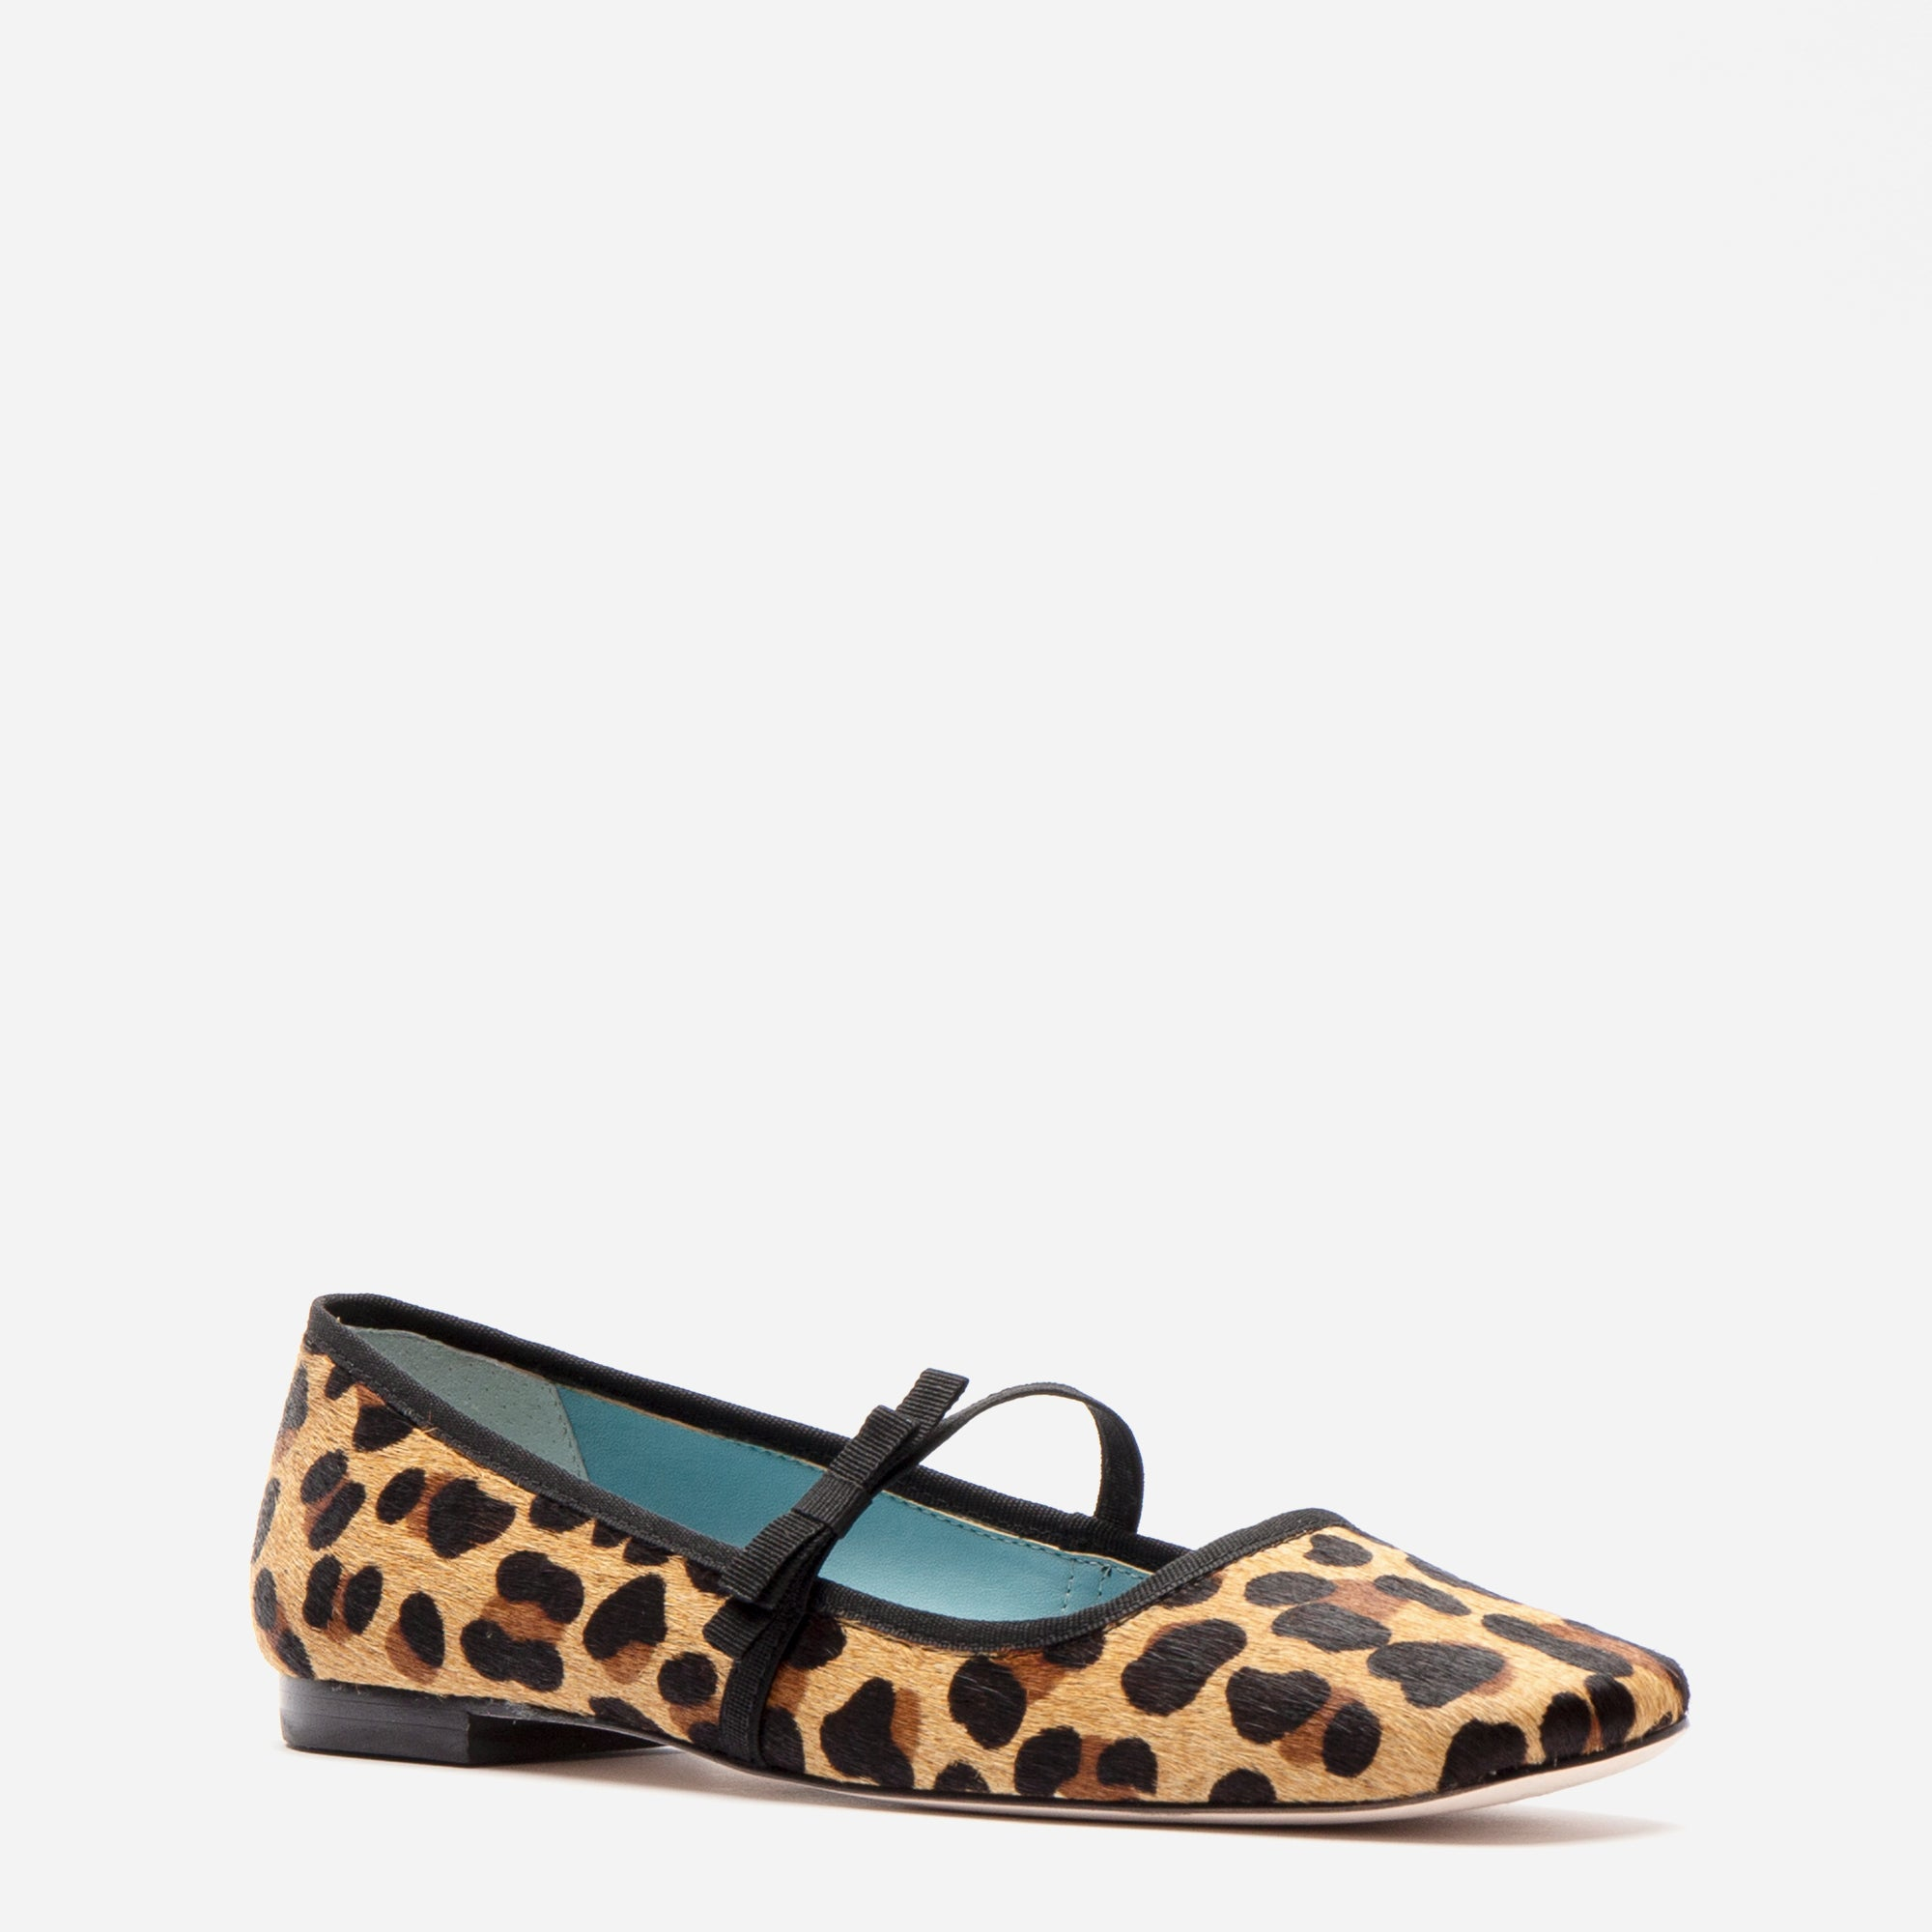 Jude Mary Jane Flat Leopard Printed Haircalf